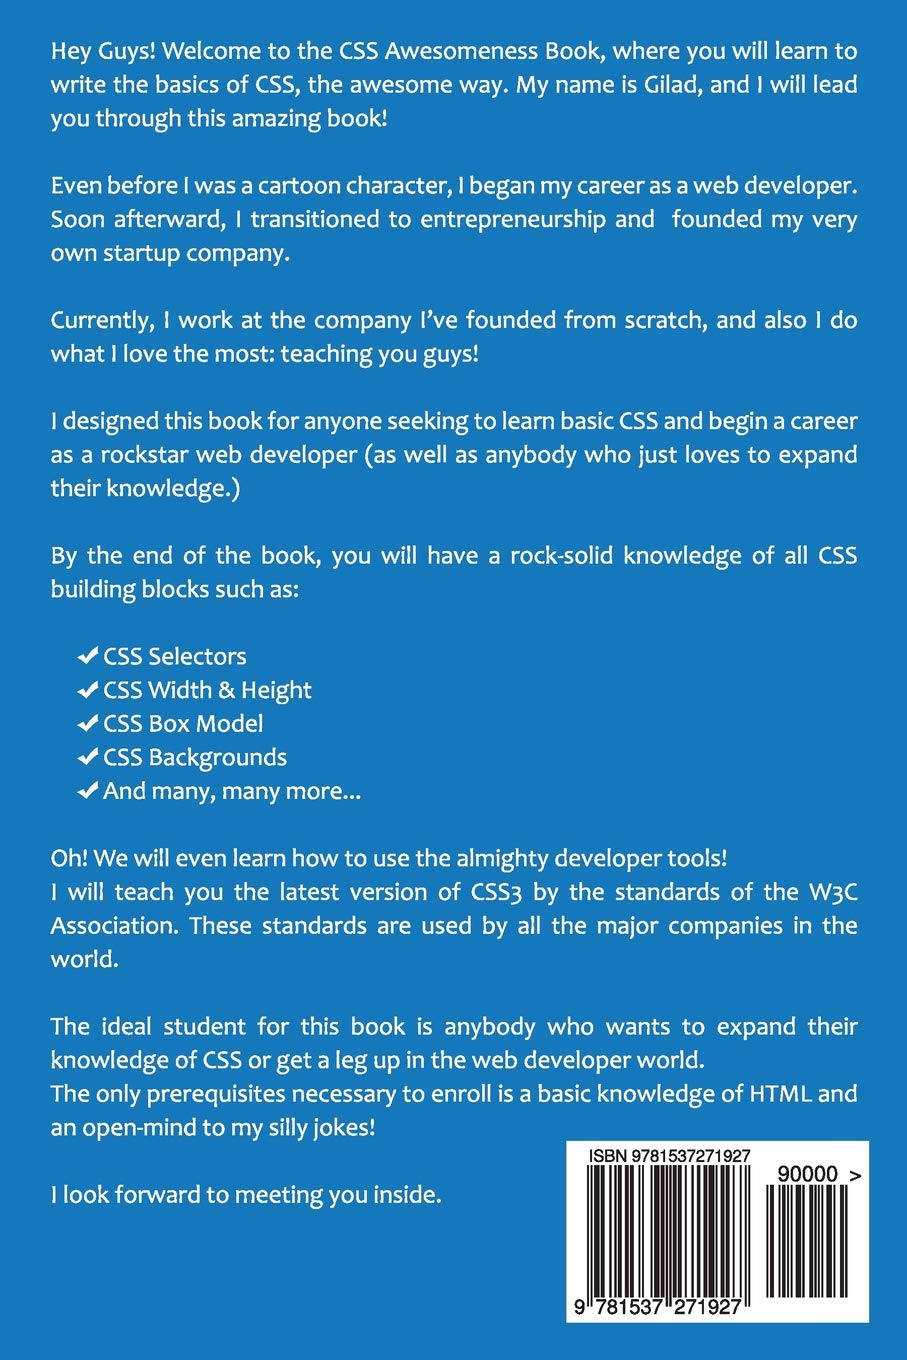 Learn To Write CSS The Awesome Way! CSS Awesomeness Book Css